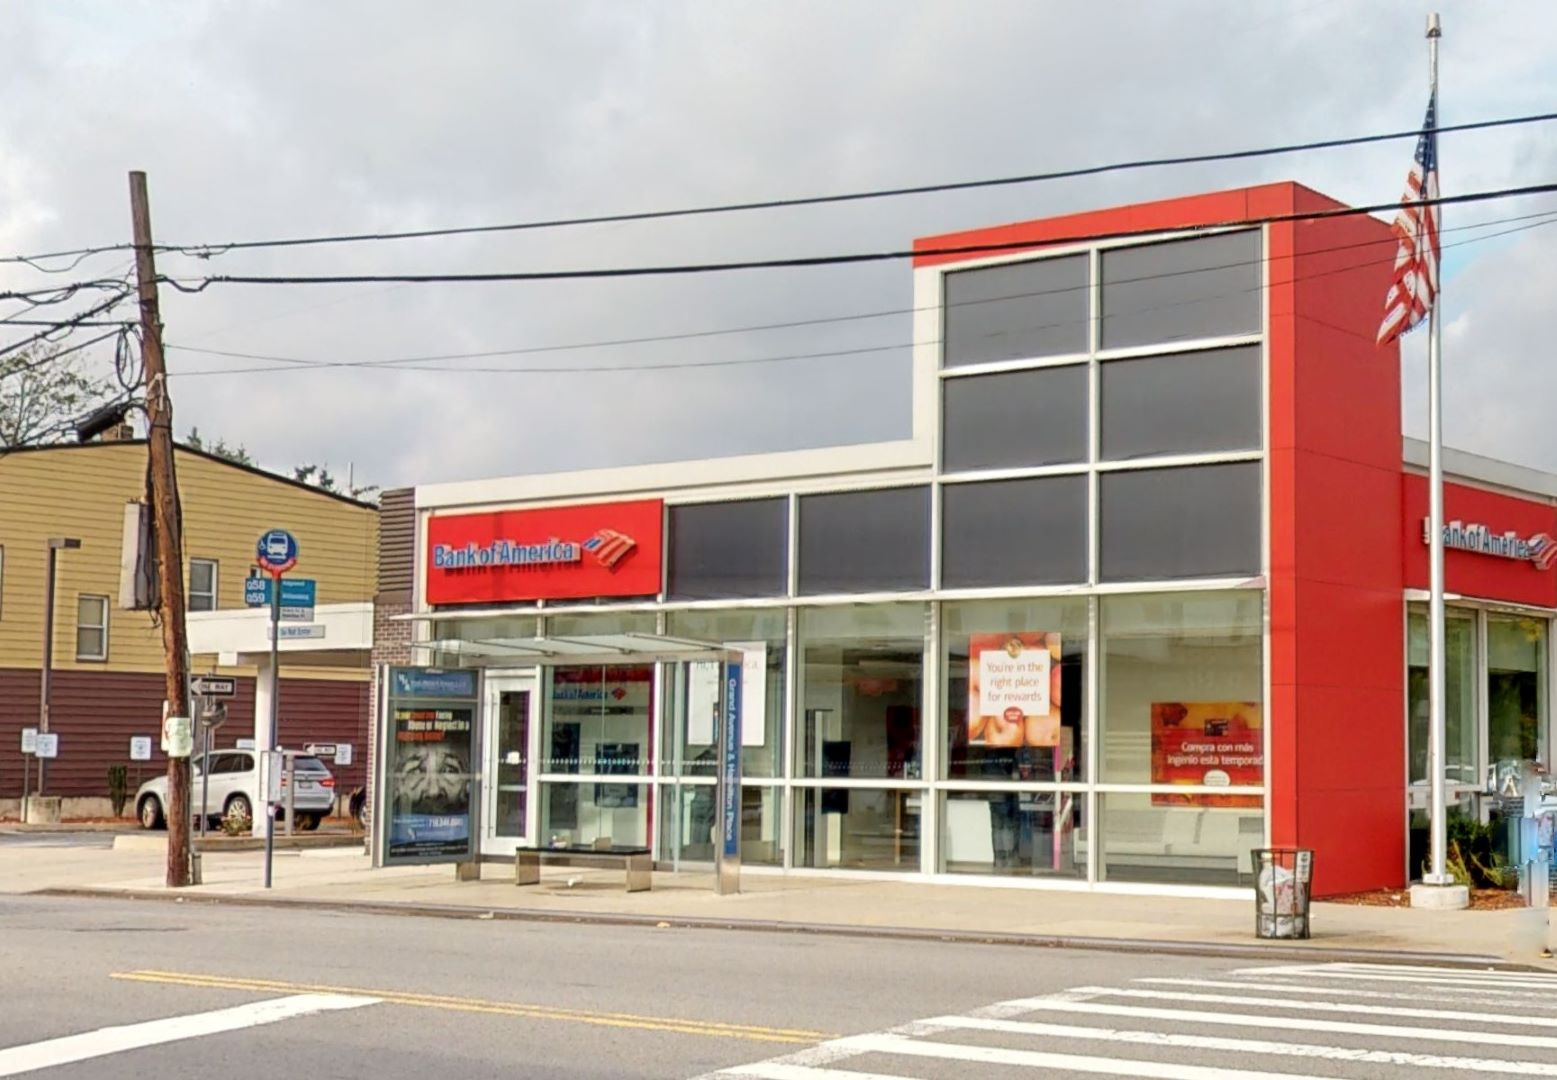 Bank of America financial center with drive-thru ATM   6563 Grand Ave, Flushing, NY 11378